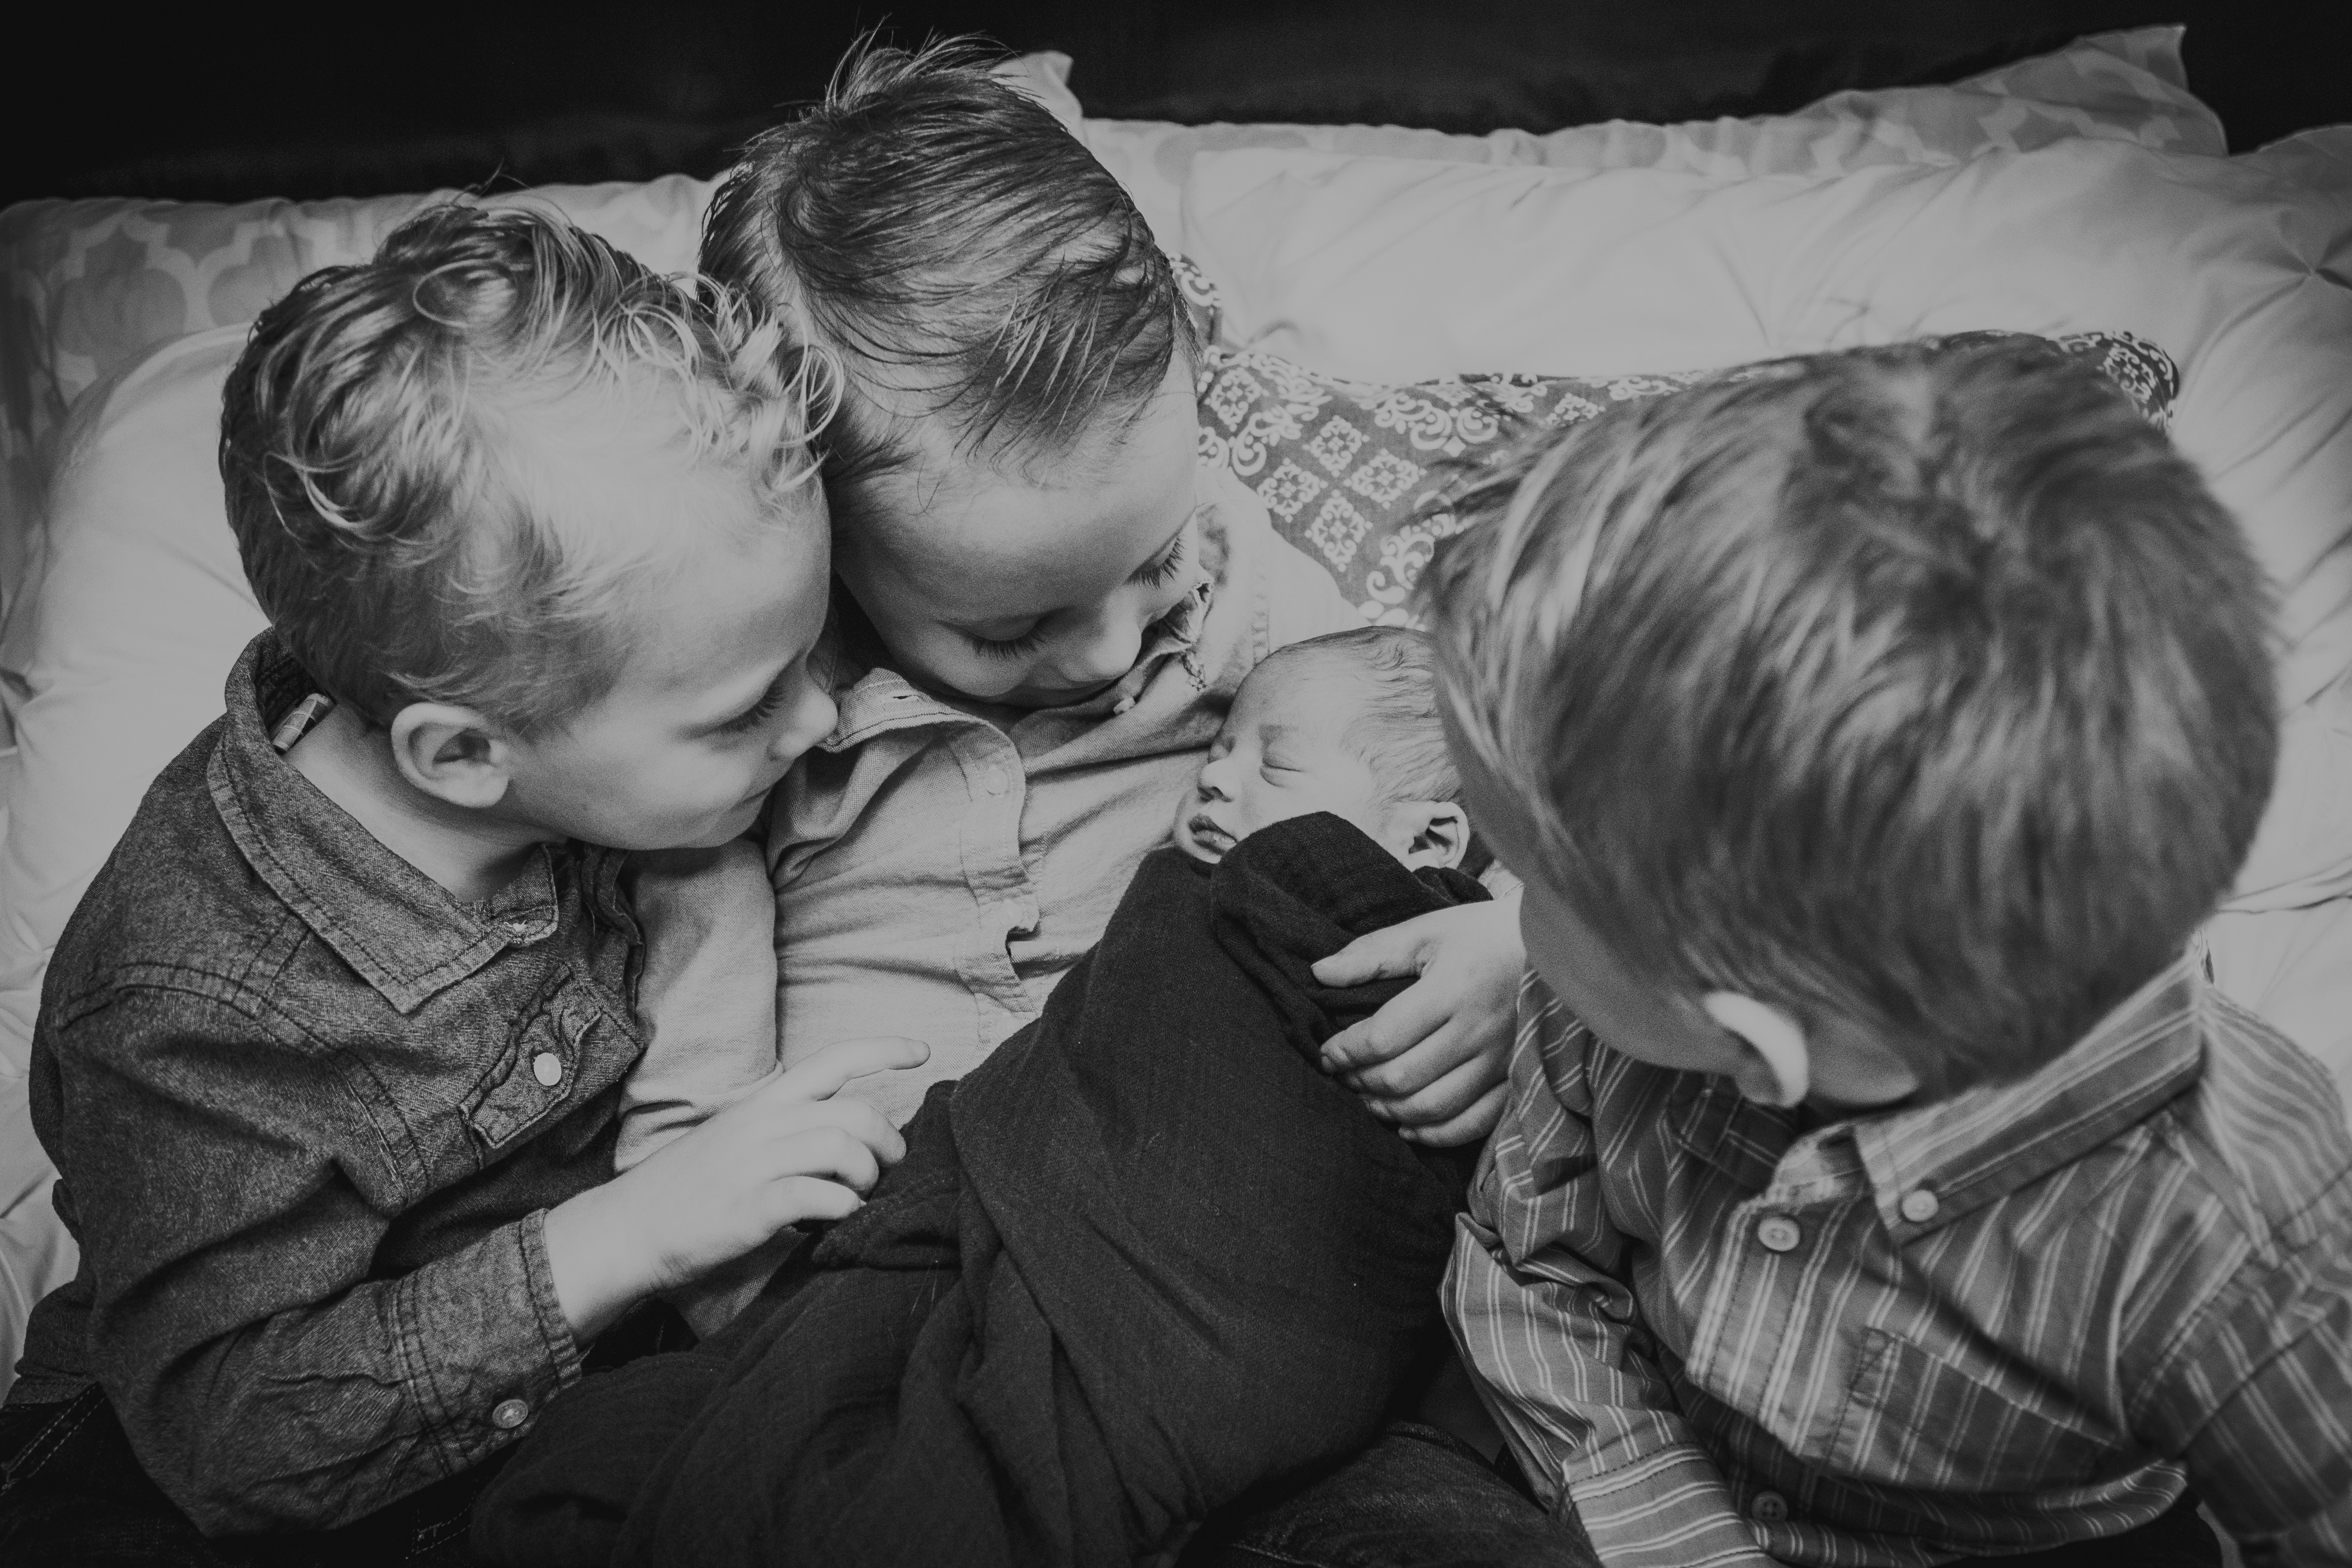 Three big brothers holding and looking on at newborn, black-and-white photo